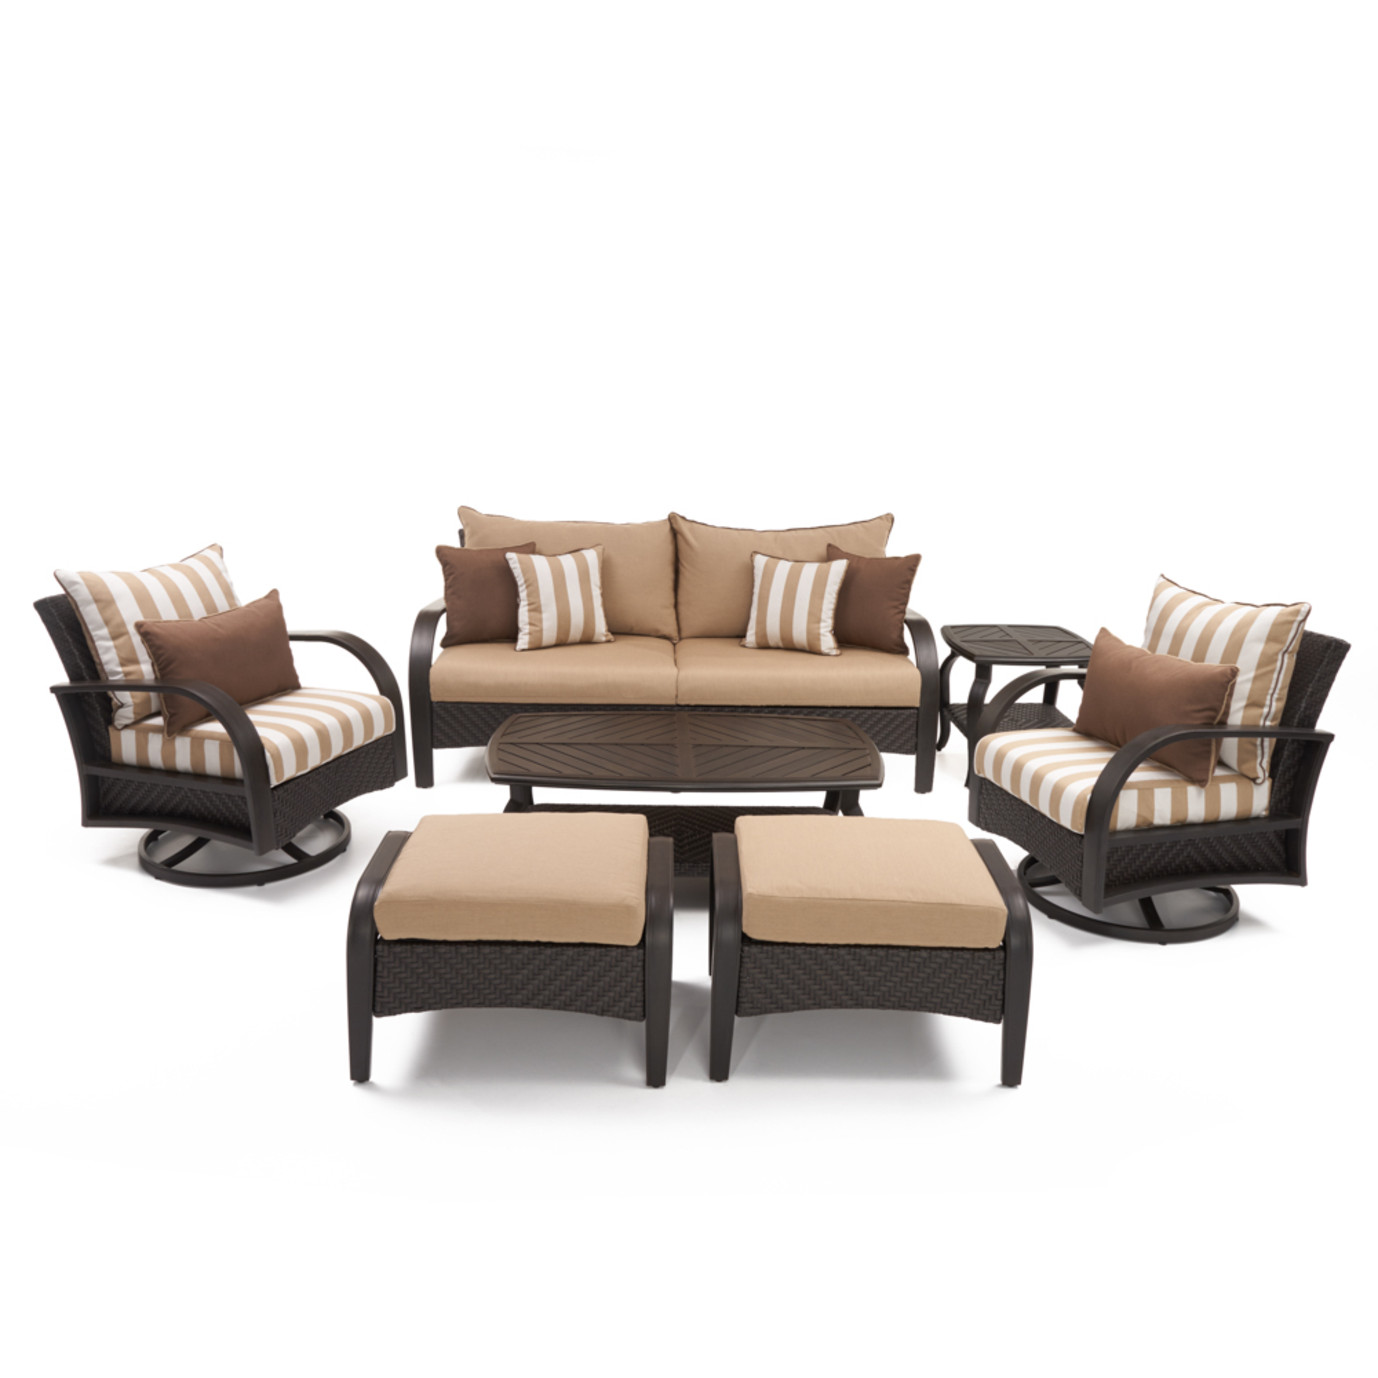 Barcelo™ 7pc Deluxe Motion Club Deep Seating Set - Maxim Beige